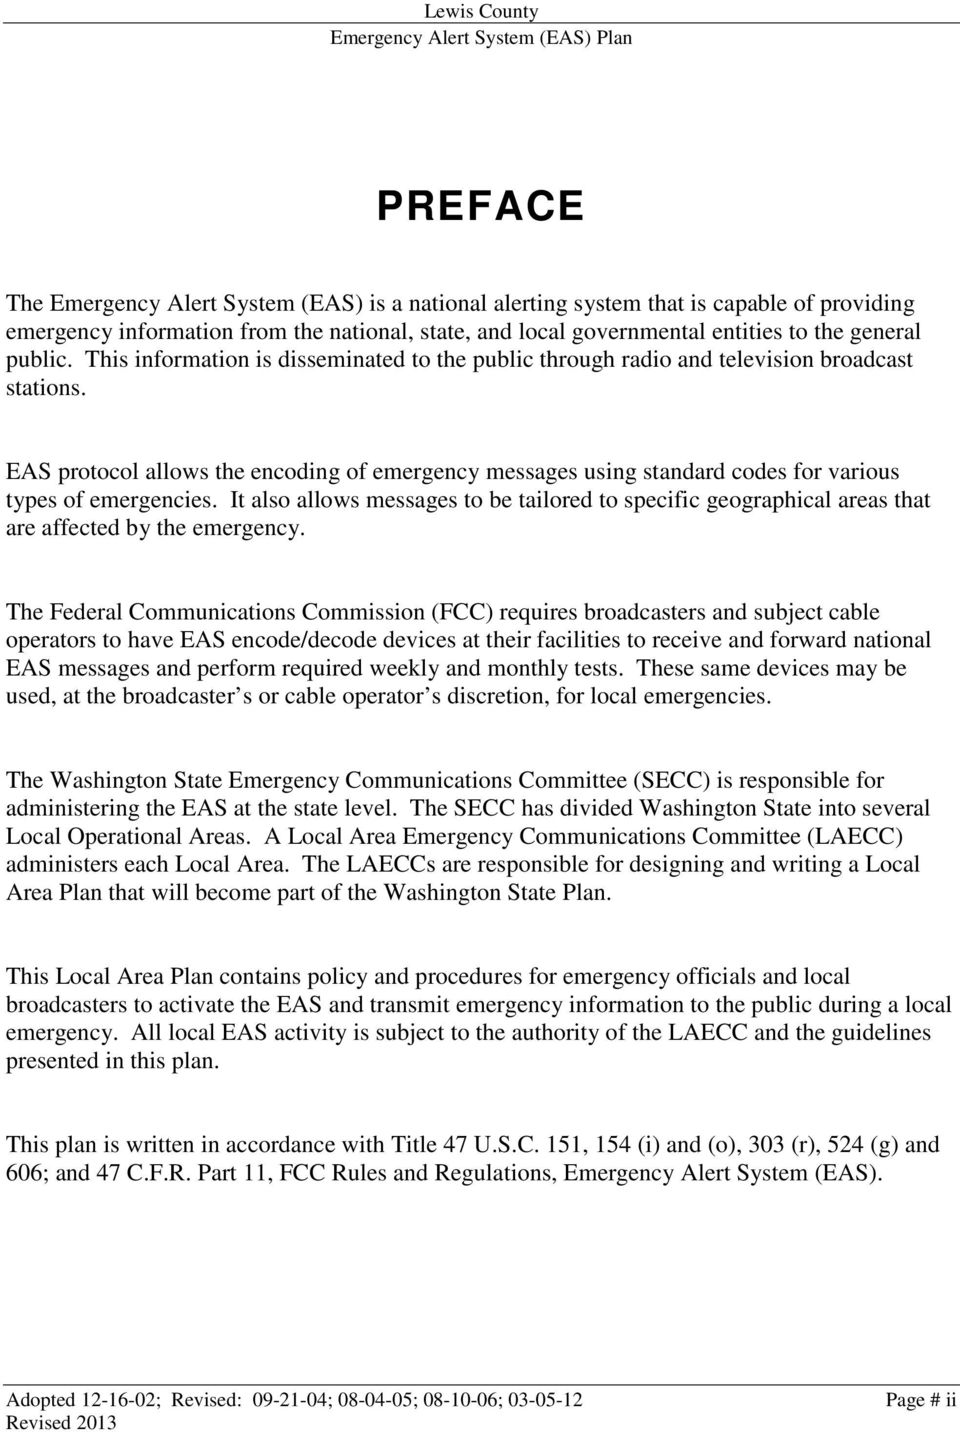 Emergency Alert System Plan (EAS) - PDF